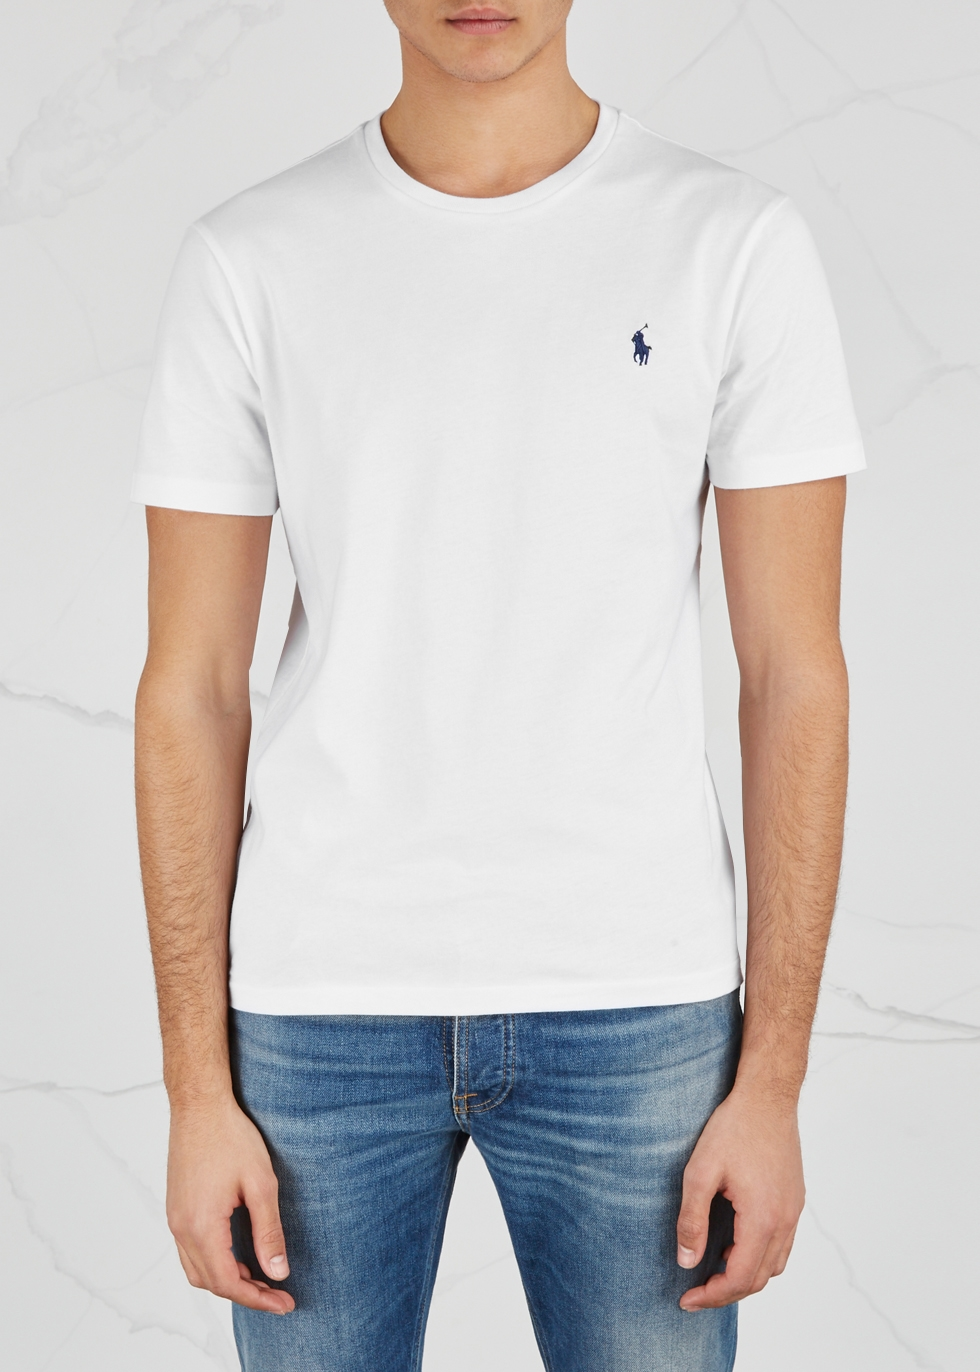 White slim cotton T-shirt - Polo Ralph Lauren